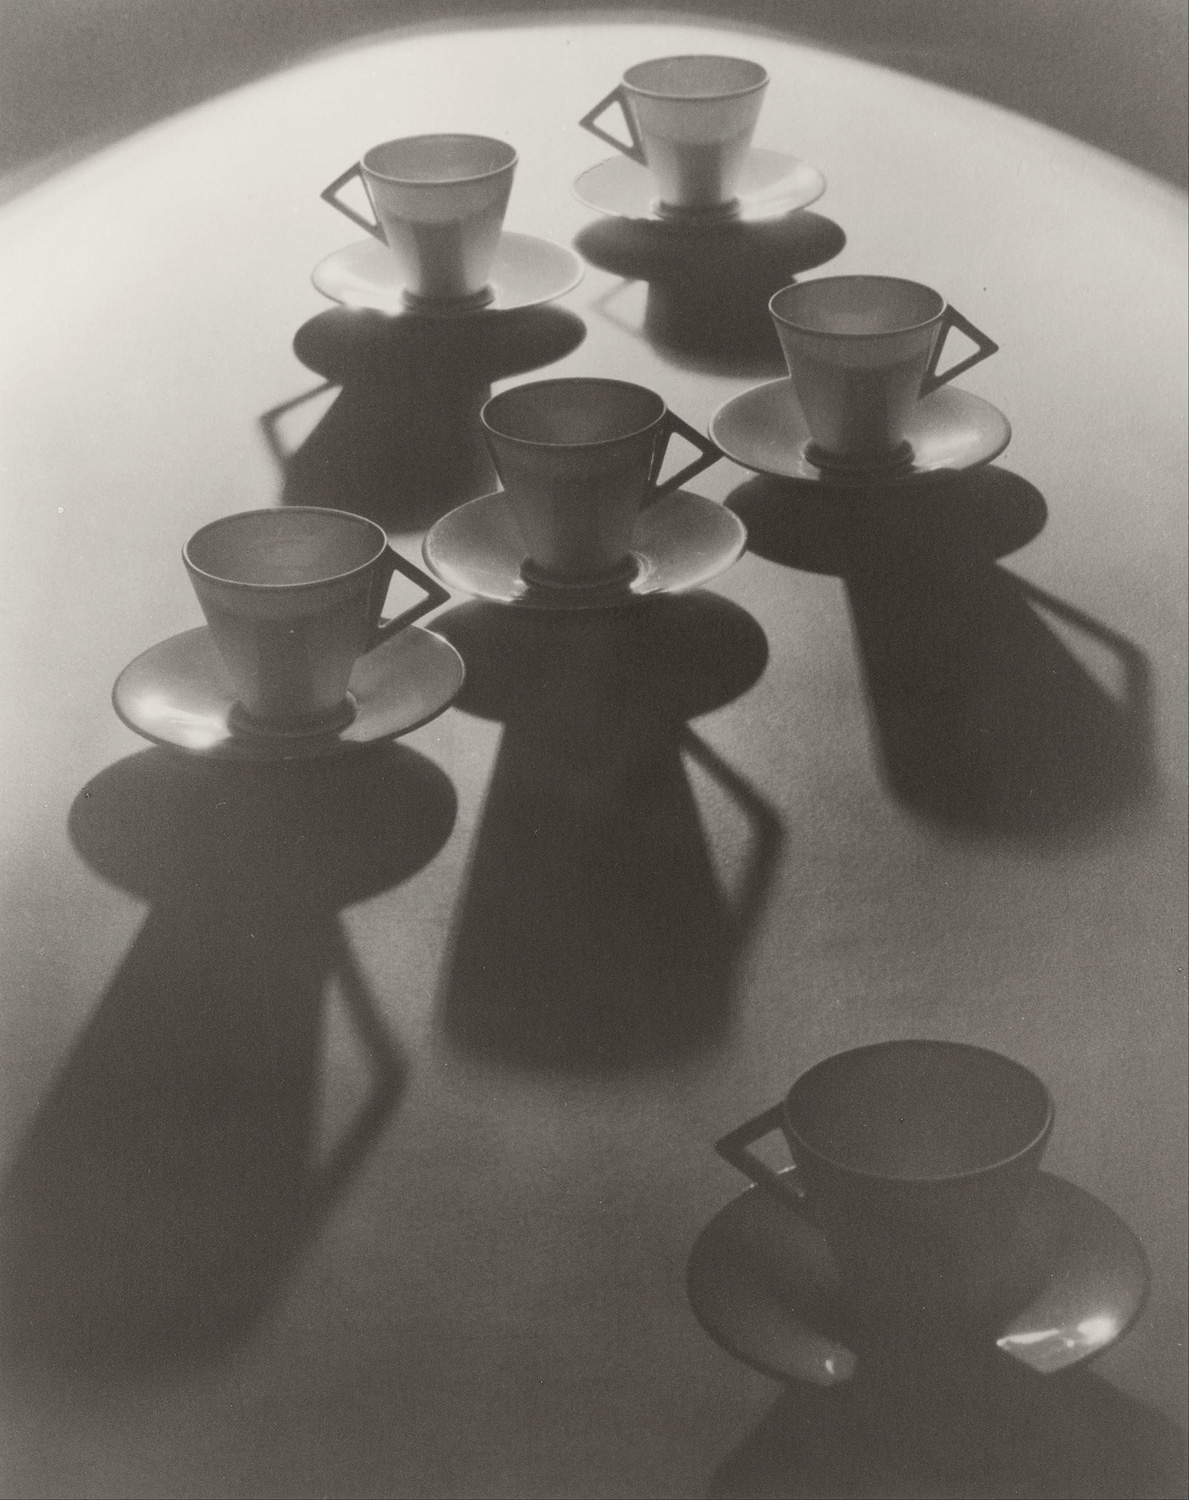 """Image: """"Teacup Ballet"""" by Olive Cotton. Image courtesy of Wikimedia"""